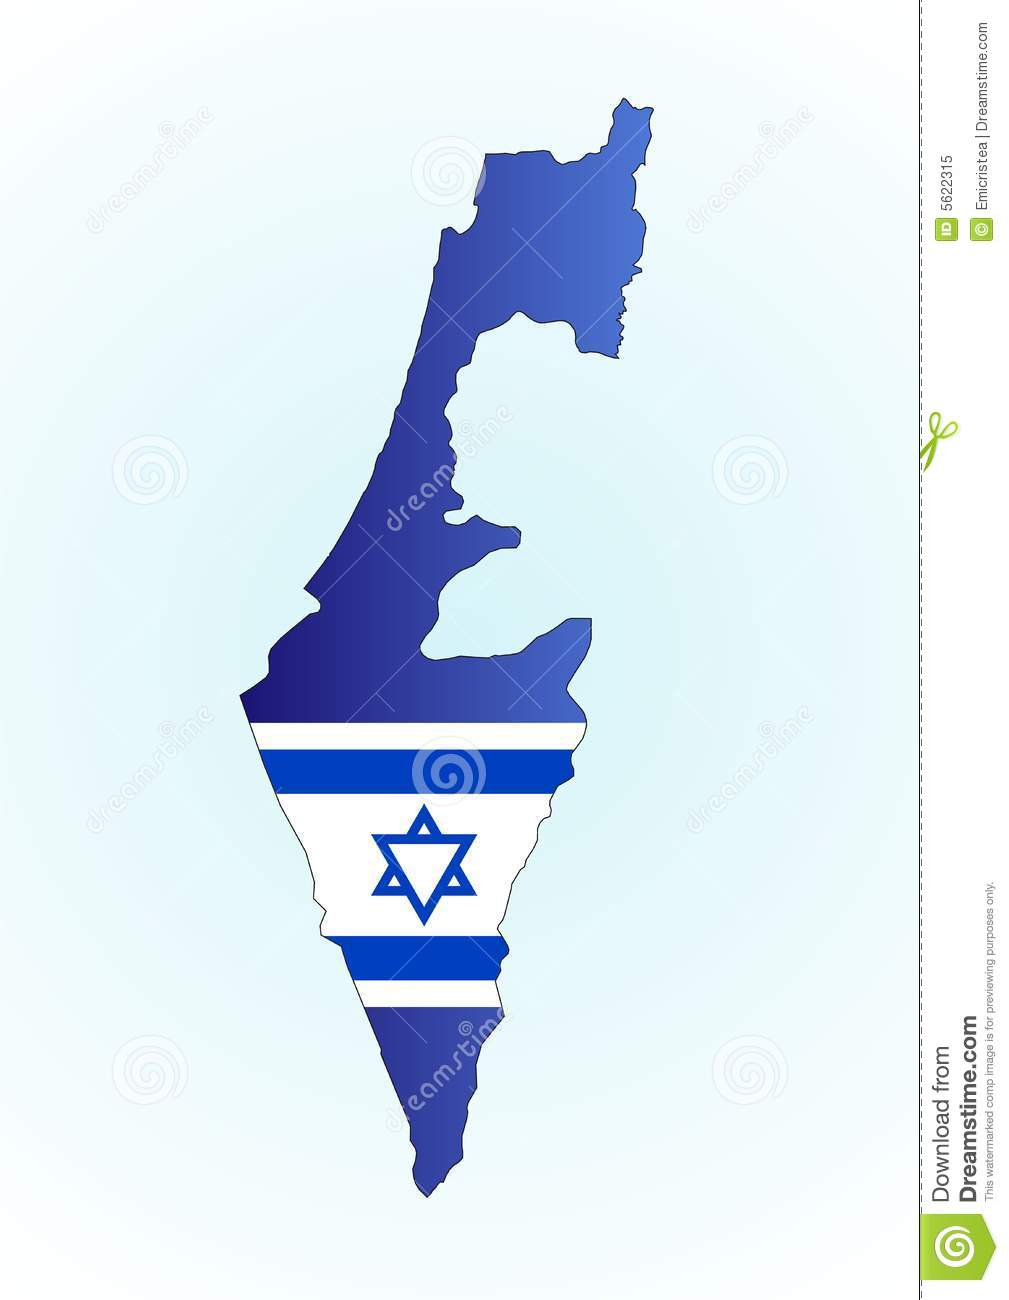 the background of the country of israel Israel is the birthplace of the jewish culture and its culture encompasses the foundations of many jewish cultural characteristics, including philosophy, literature, poetry, art, mythology, folklore, mysticism and festivals as well as judaism, which was also fundamental to the creation of christianity and islam.